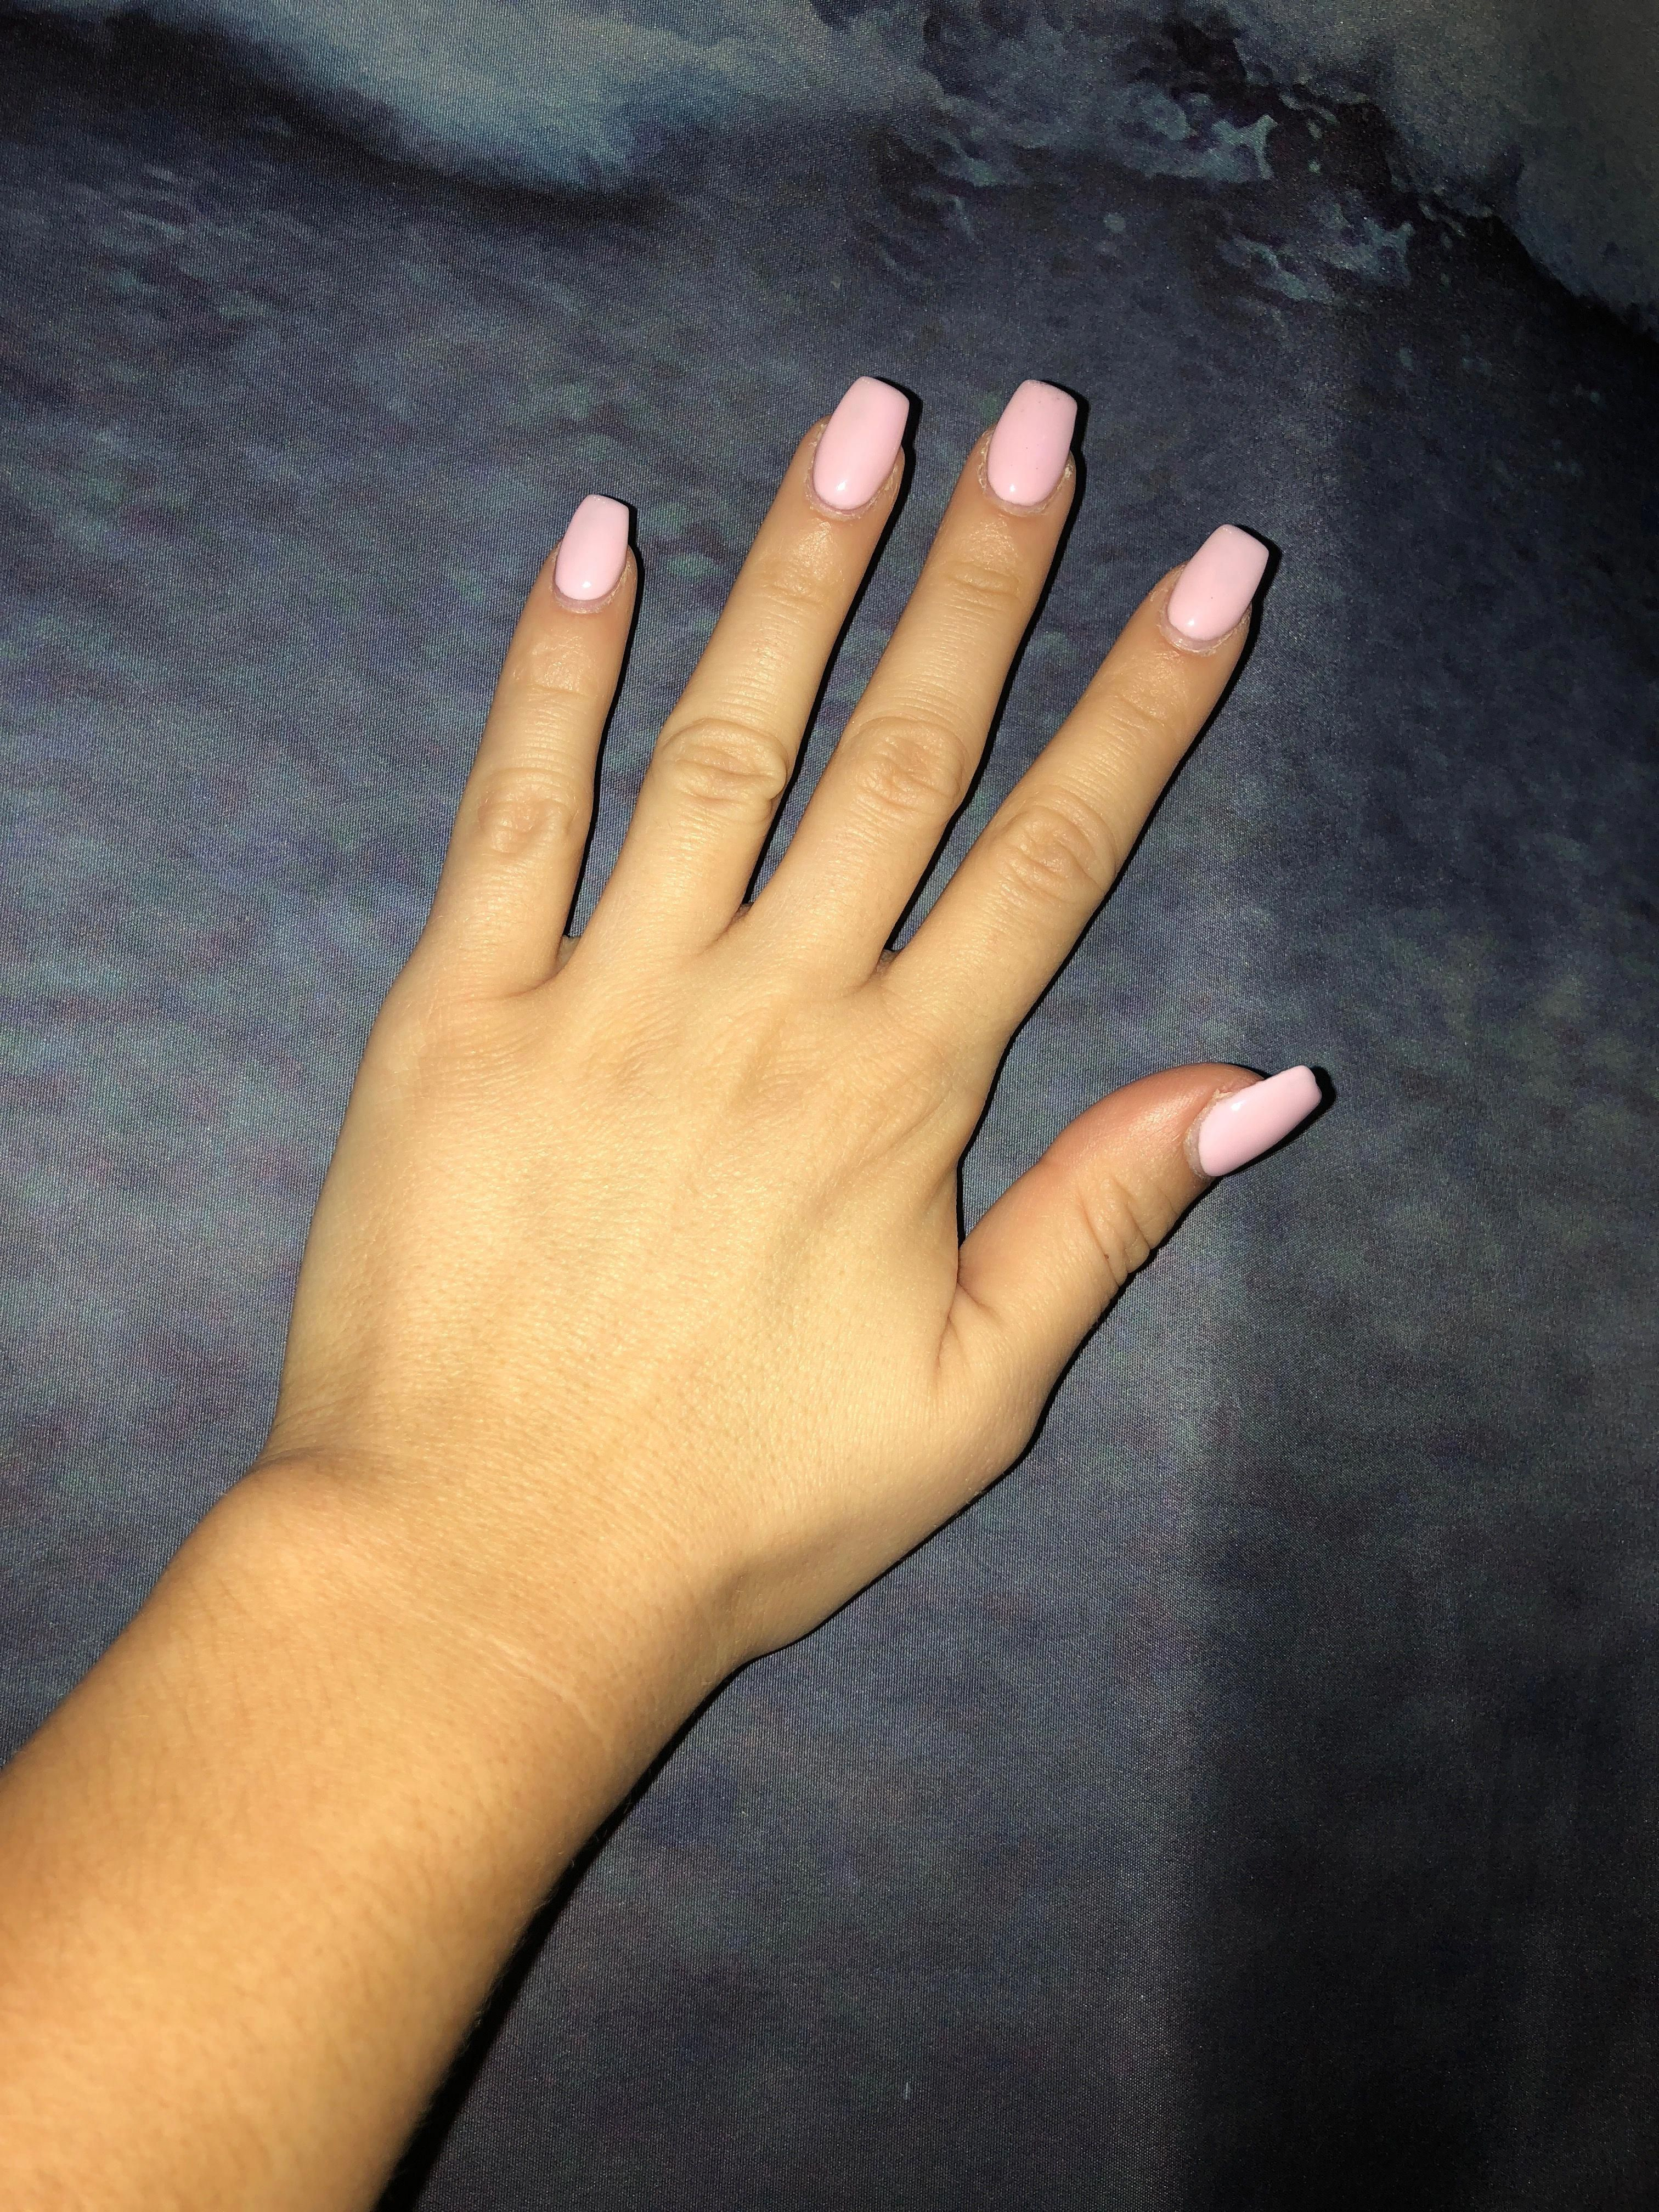 New Nails Short Acrylic With Shellac Rounded Acrylic Nails Trendy Nails Gel Nails